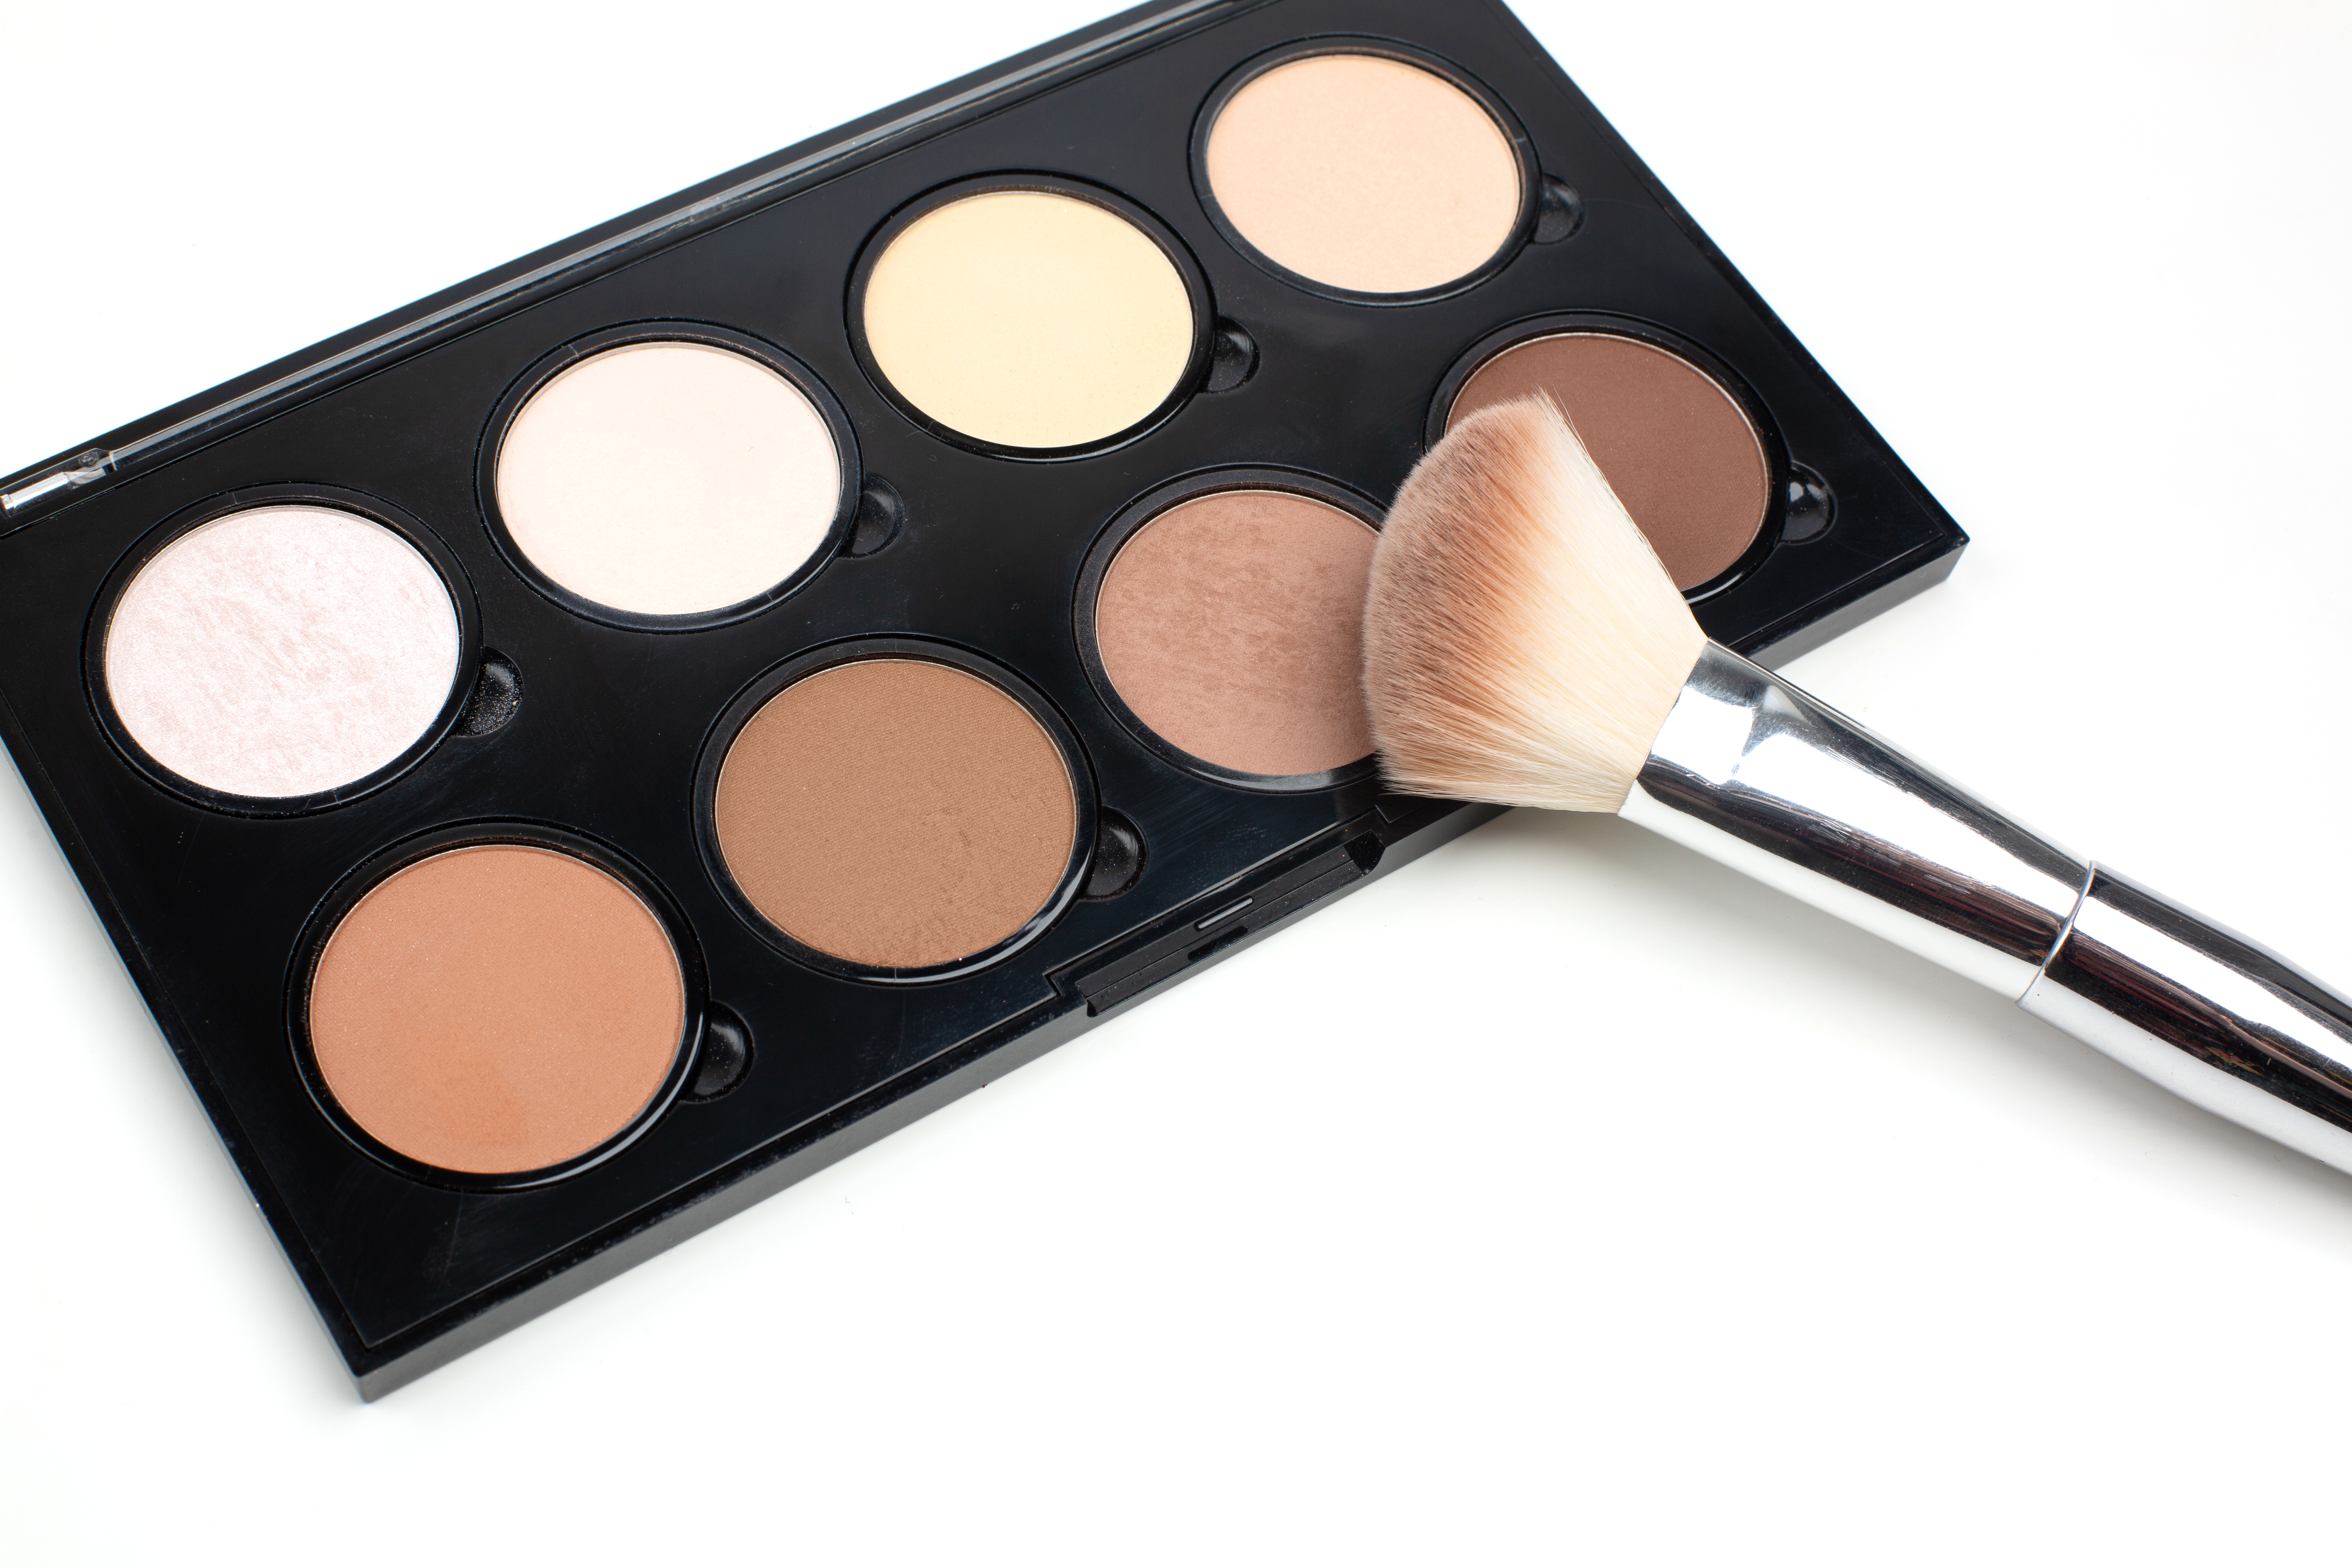 contour brush placed on top of contour palette